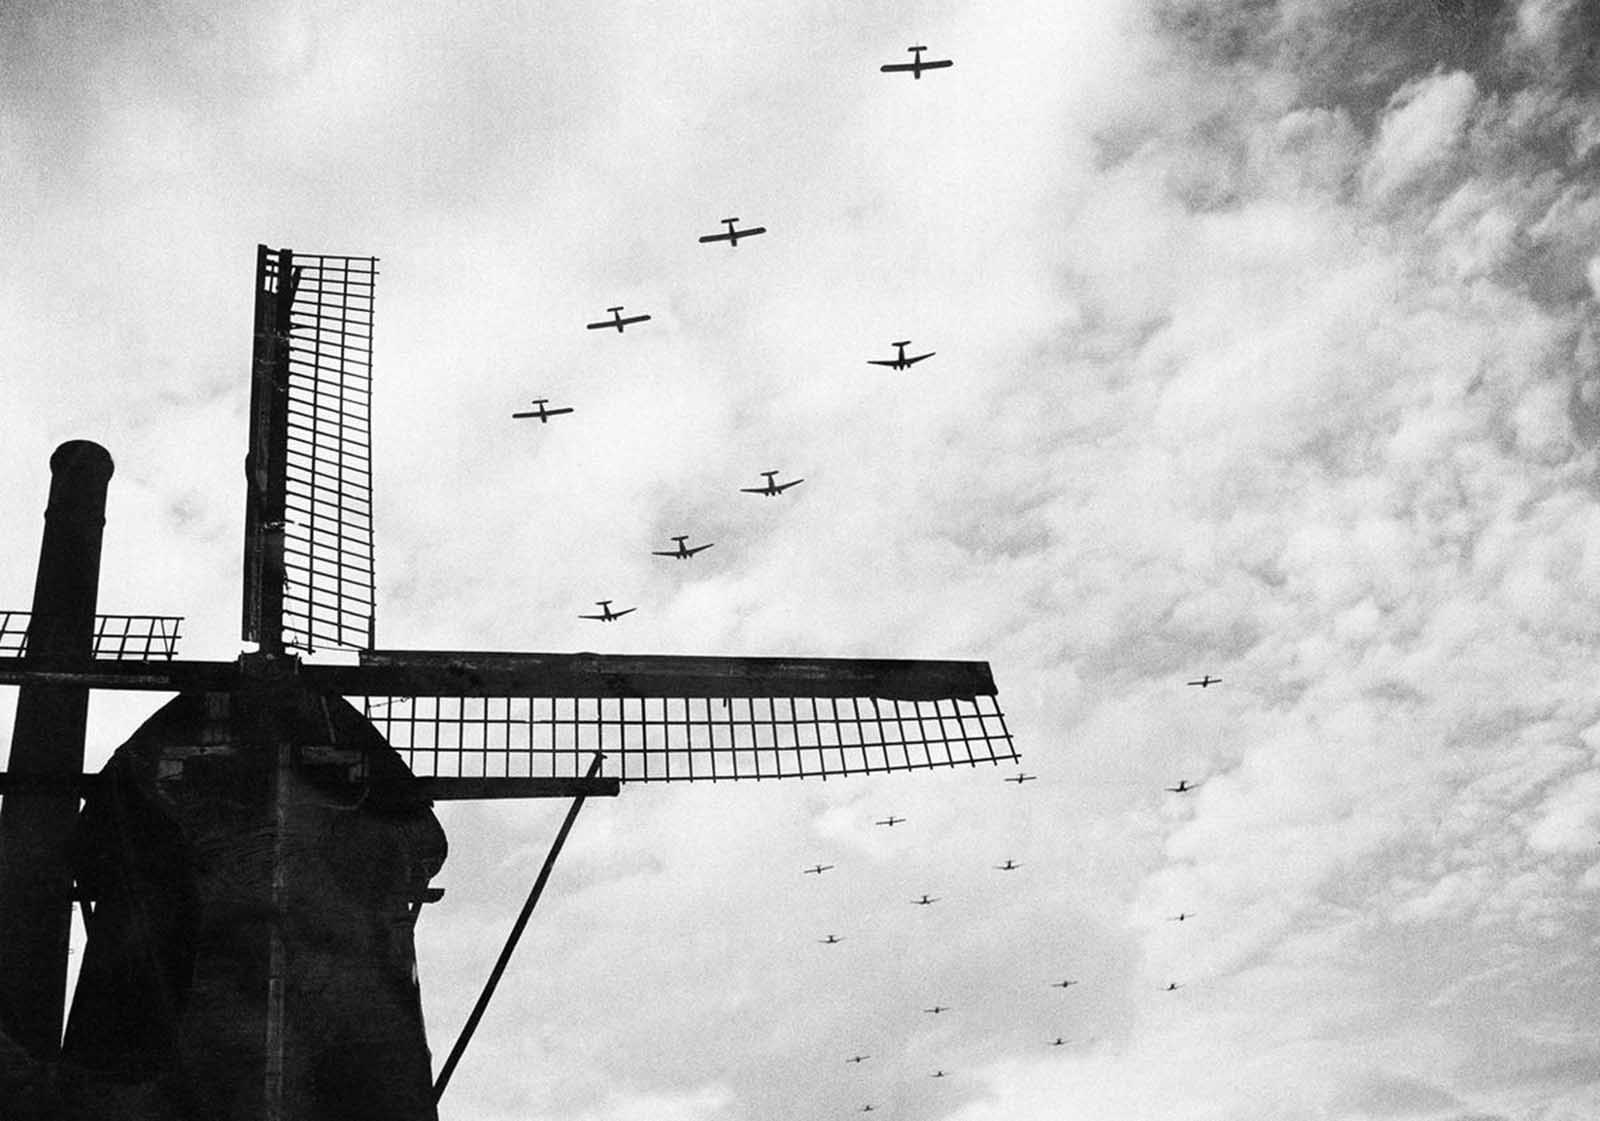 In the sky above the Netherlands, American tow planes with gliders strung out behind them fly high over windmill in Valkenswaard, near Eindhoven, on their way to support airborne army in Holland, on September 25, 1944.